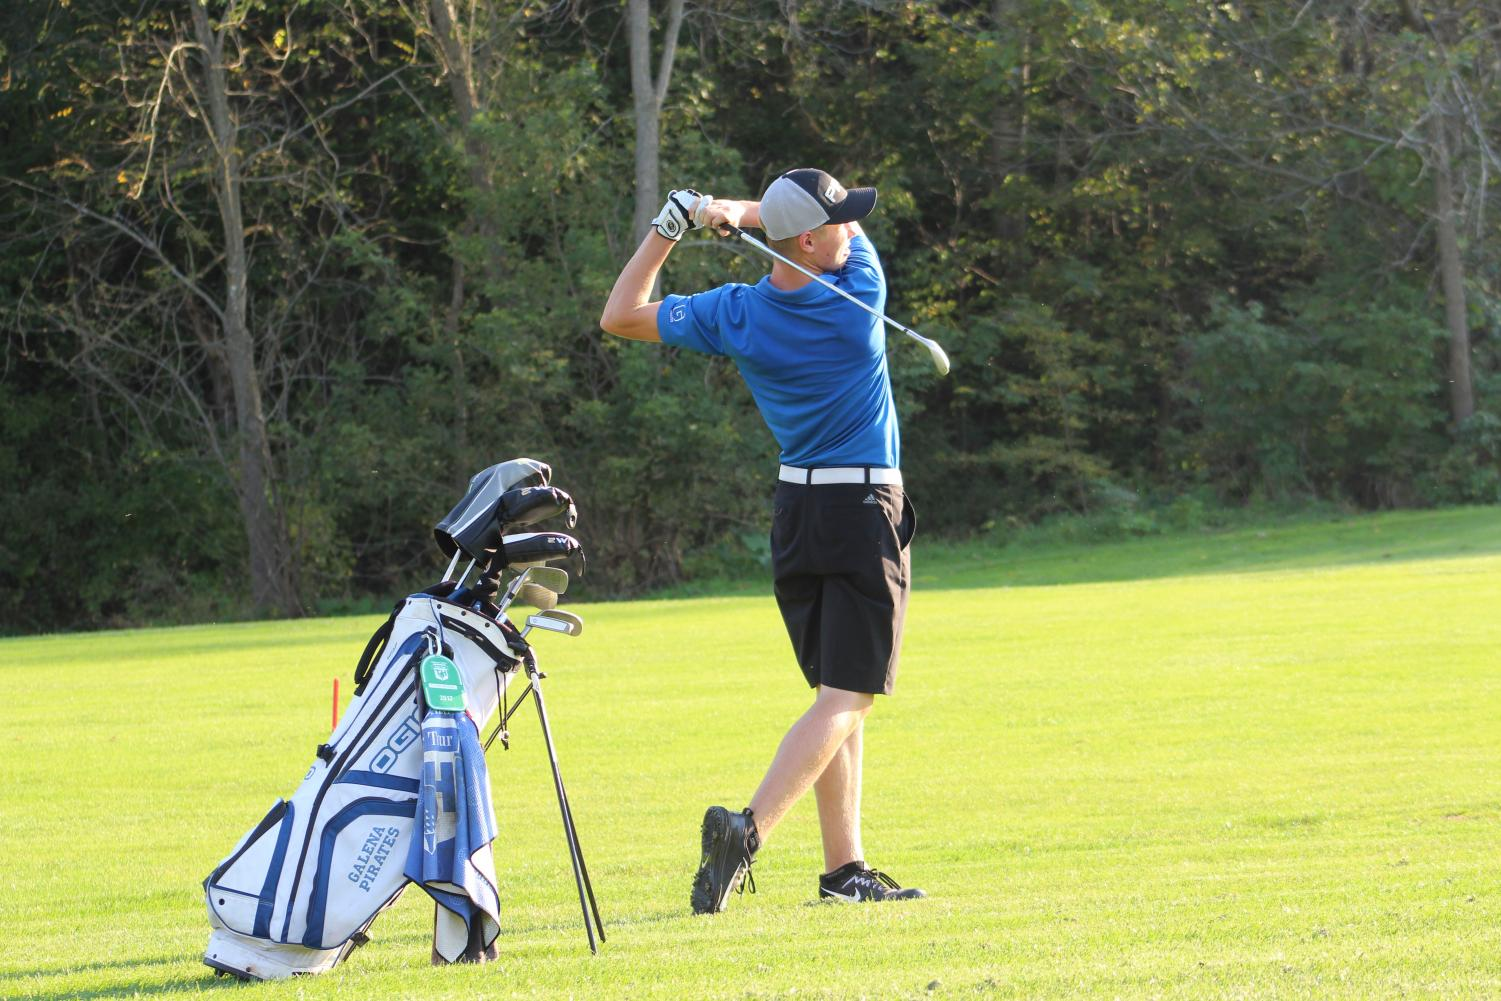 Fore: Tyler Moran '18 watches as his ball tracks right for the pin. Moran will compete at the state tournament on Friday, October 12.